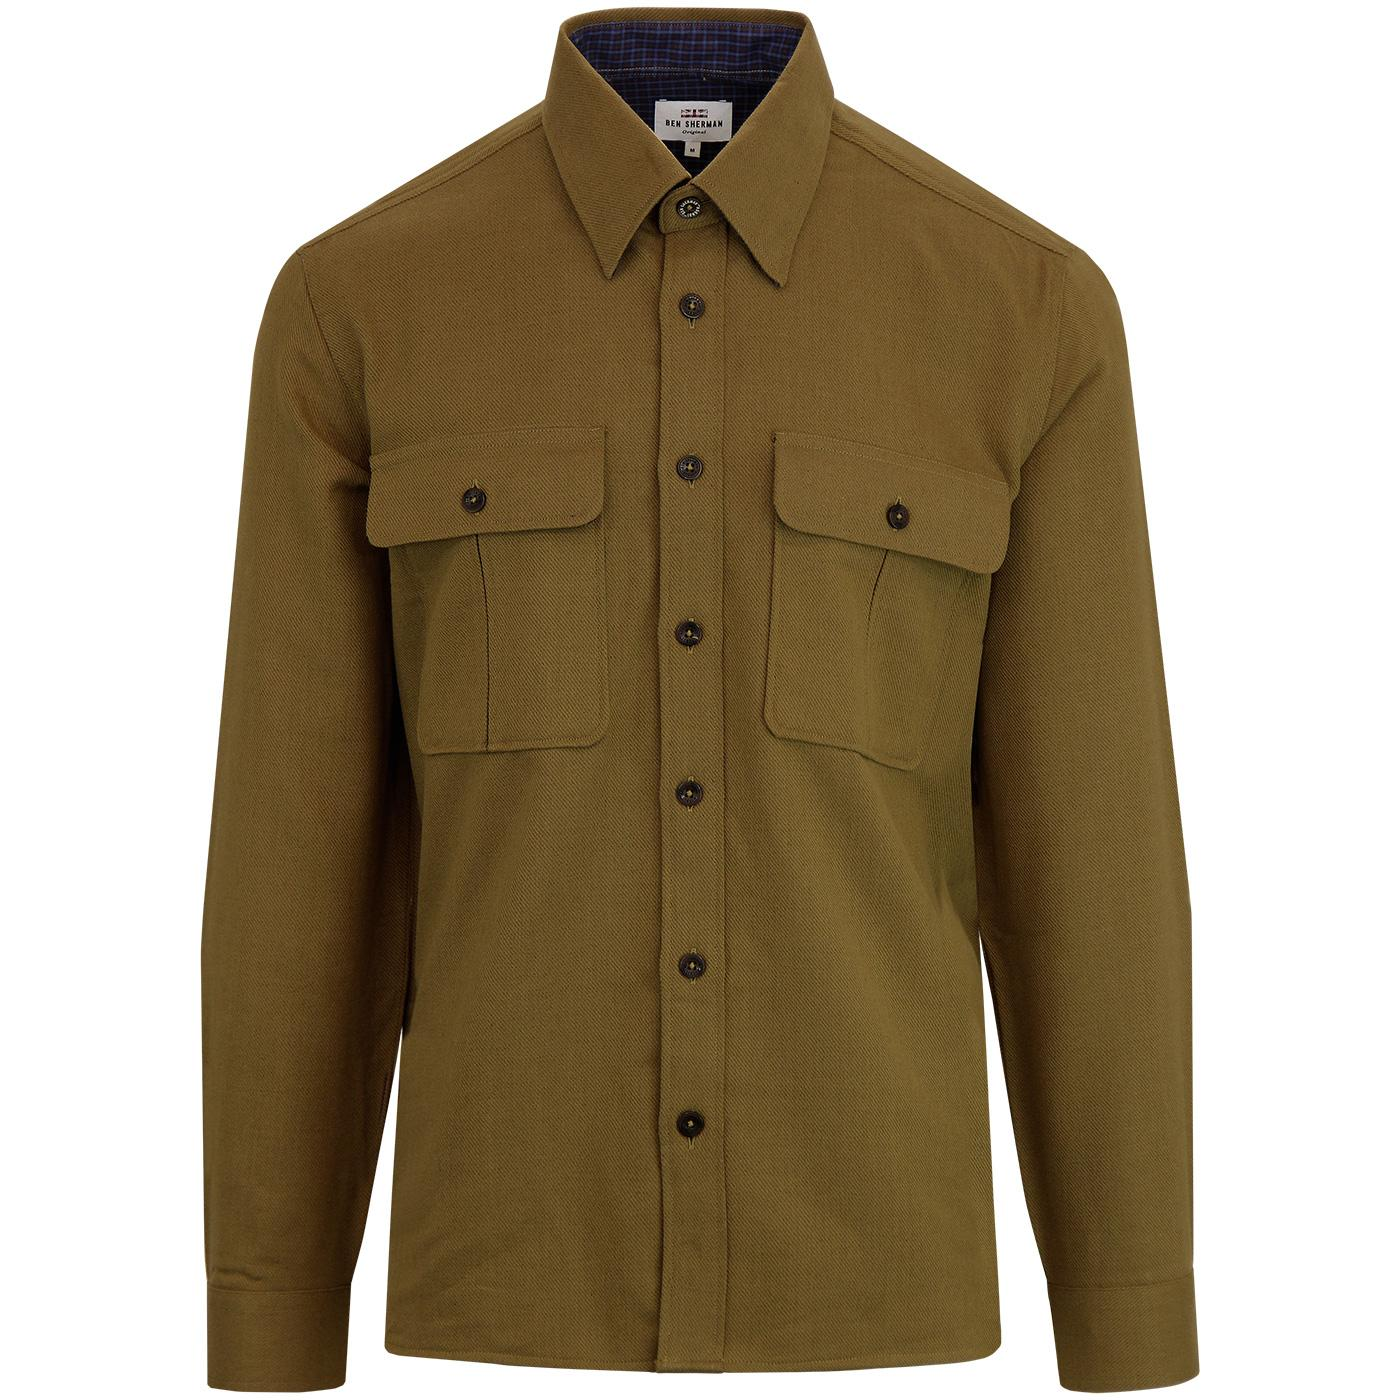 BEN SHERMAN Retro Textured Wool Utility Overshirt